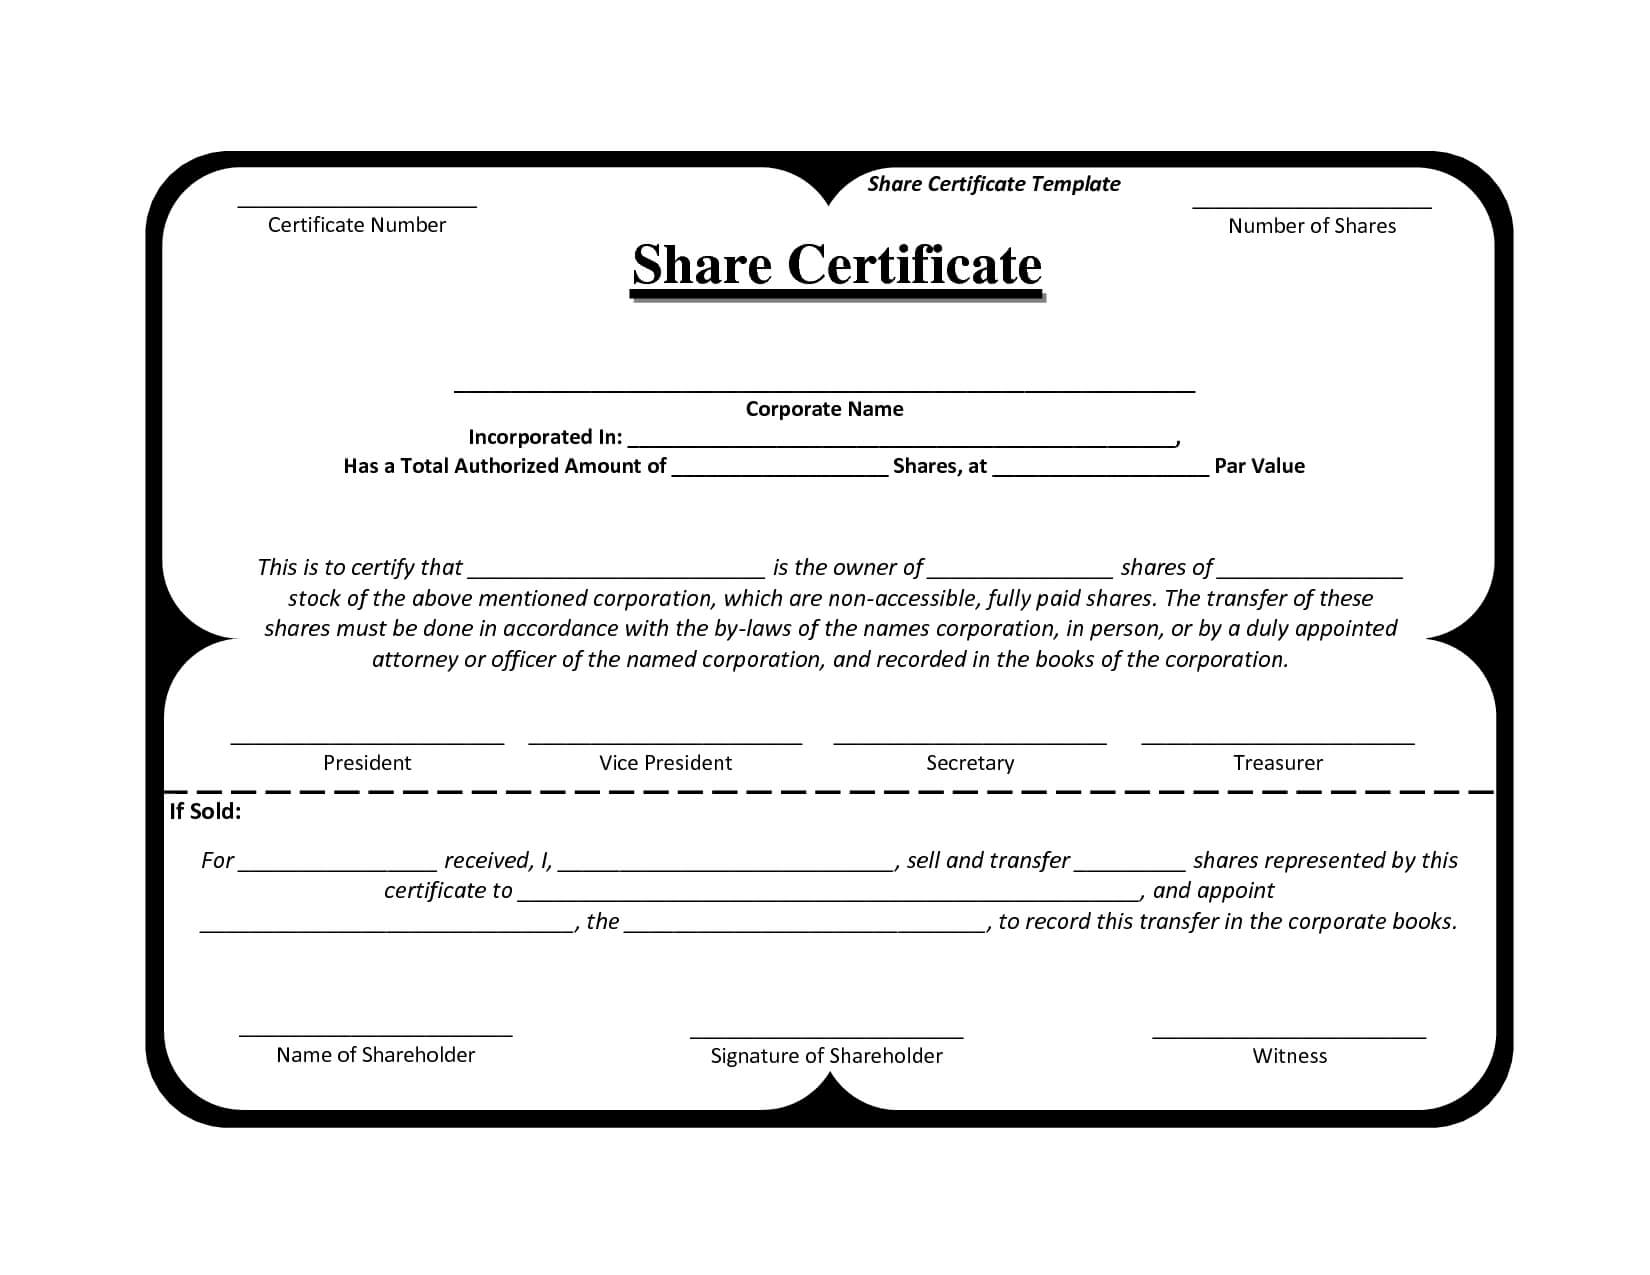 Template Share Certificate Rbscqi9V In 2019 | Certificate inside Blank Share Certificate Template Free